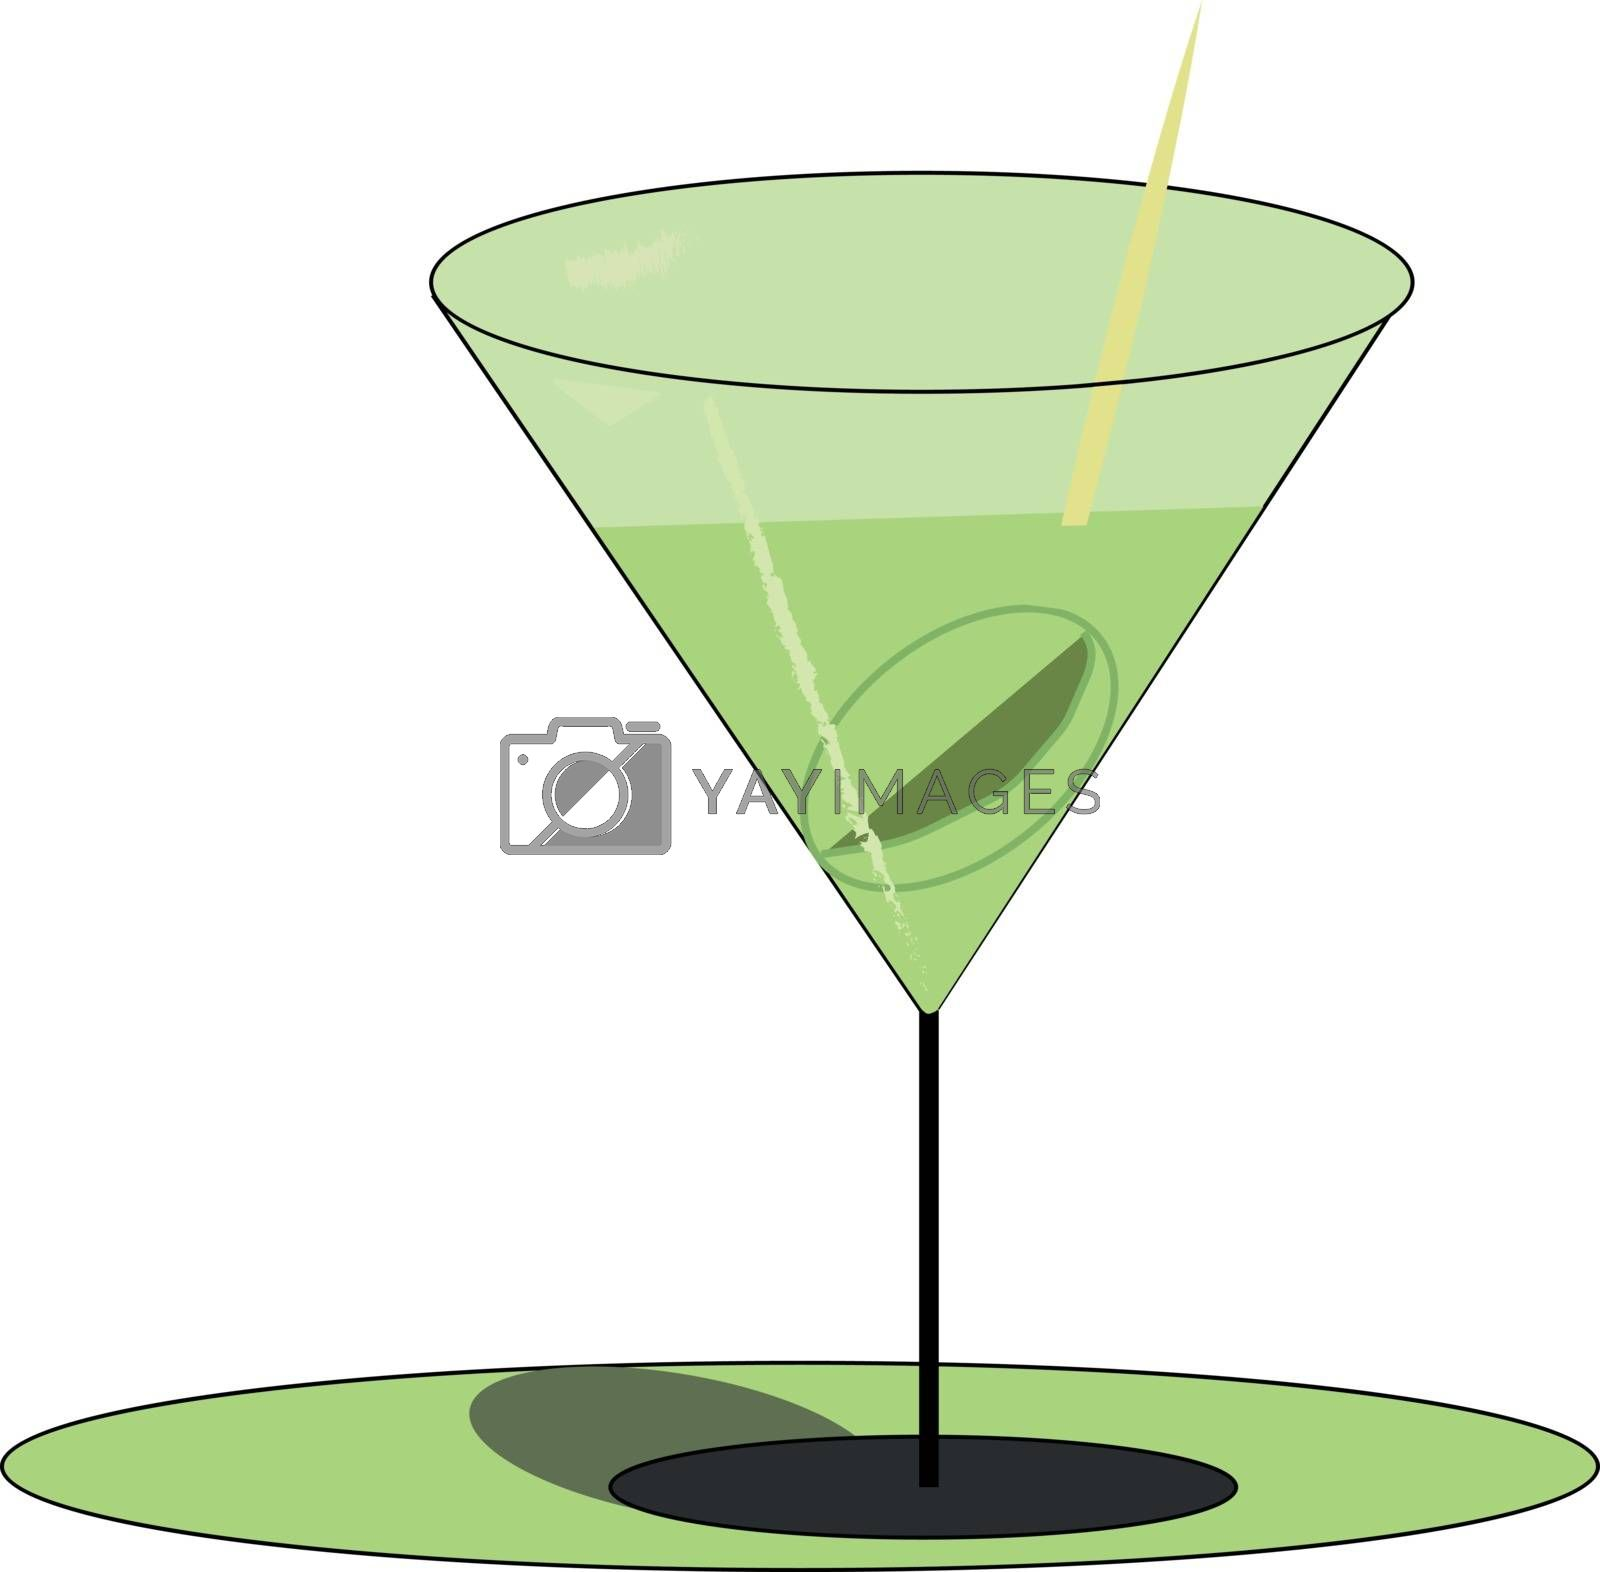 Royalty free image of Green-colored martini drink filled in elegant party glassware ve by Morphart